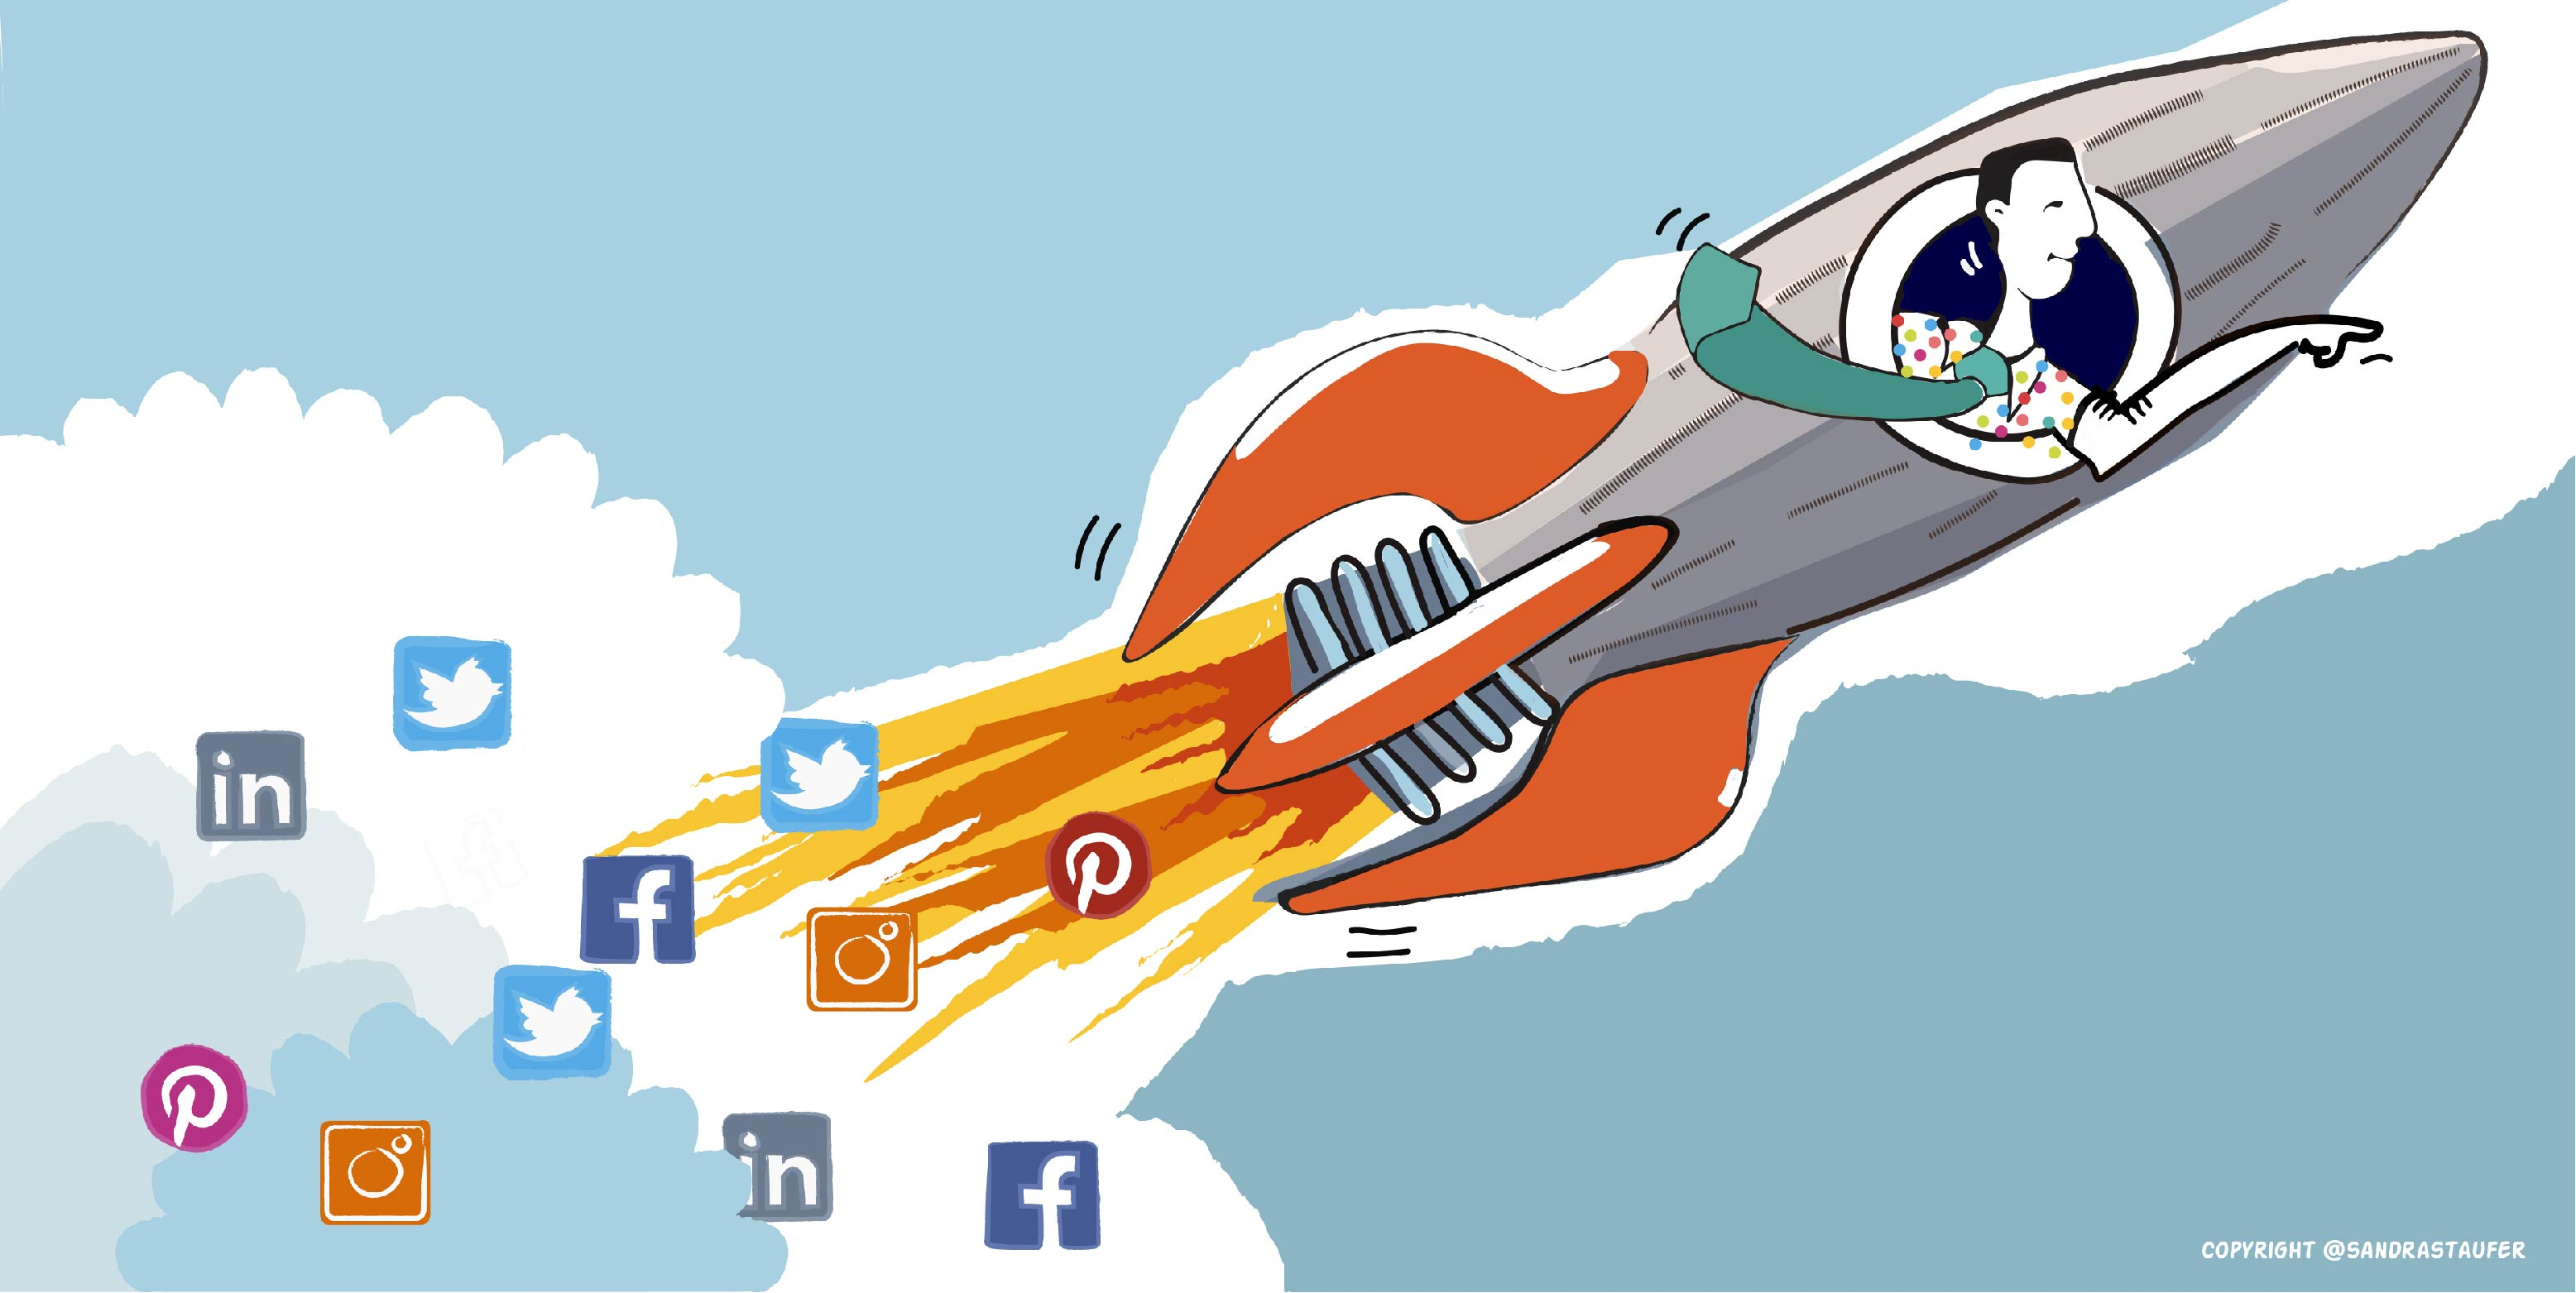 Illustration by #sandrastaufer for a Networking & Coaching Event by Heads-up Coaching: 'Boost your business through social media'